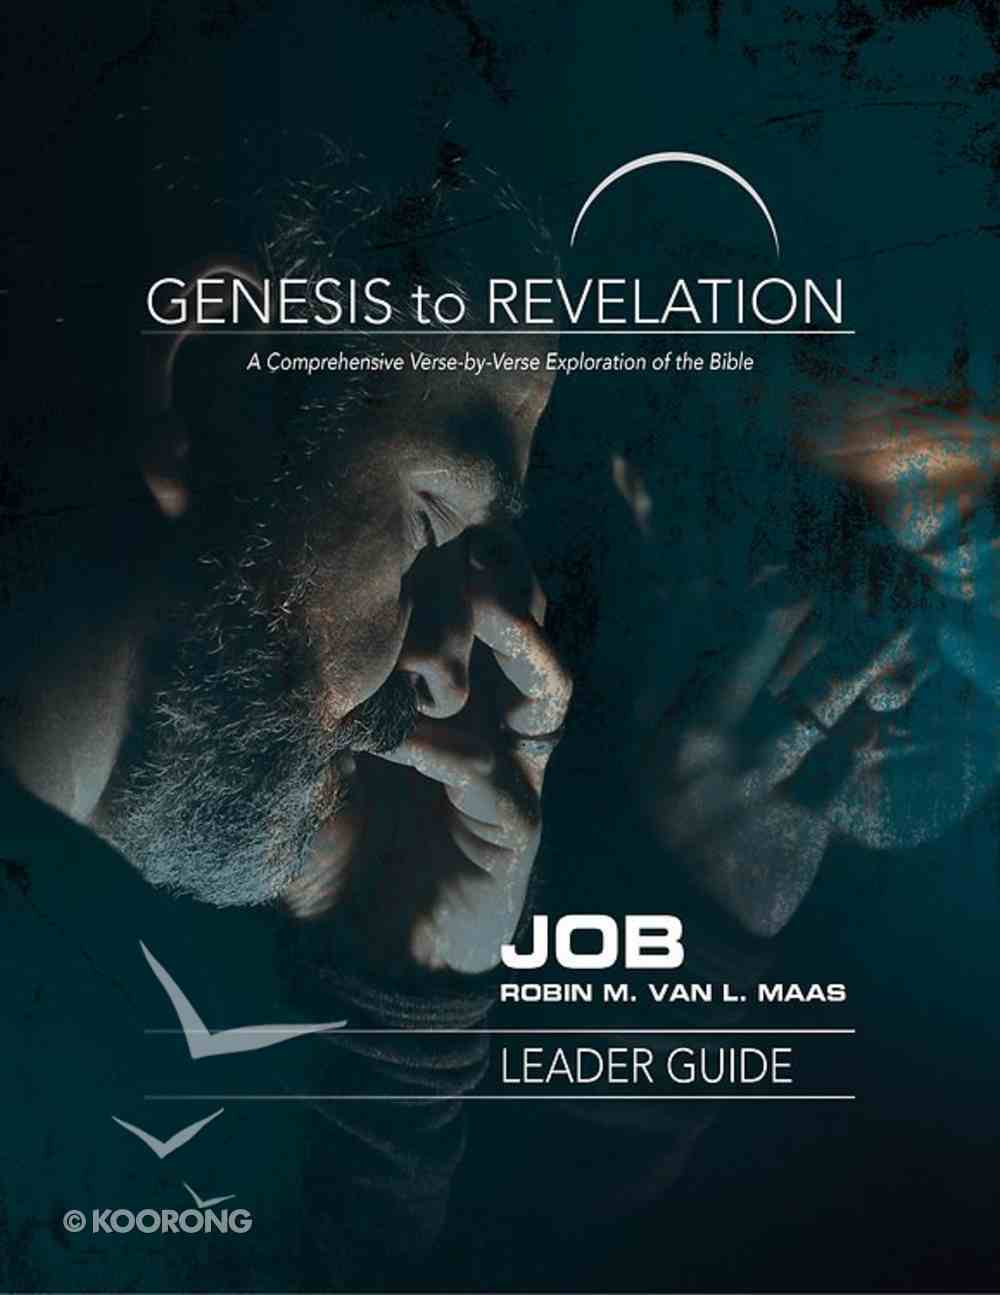 Job : A Comprehensive Verse-By-Verse Exploration of the Bible (Leader Guide) (Genesis To Revelation Series) eBook